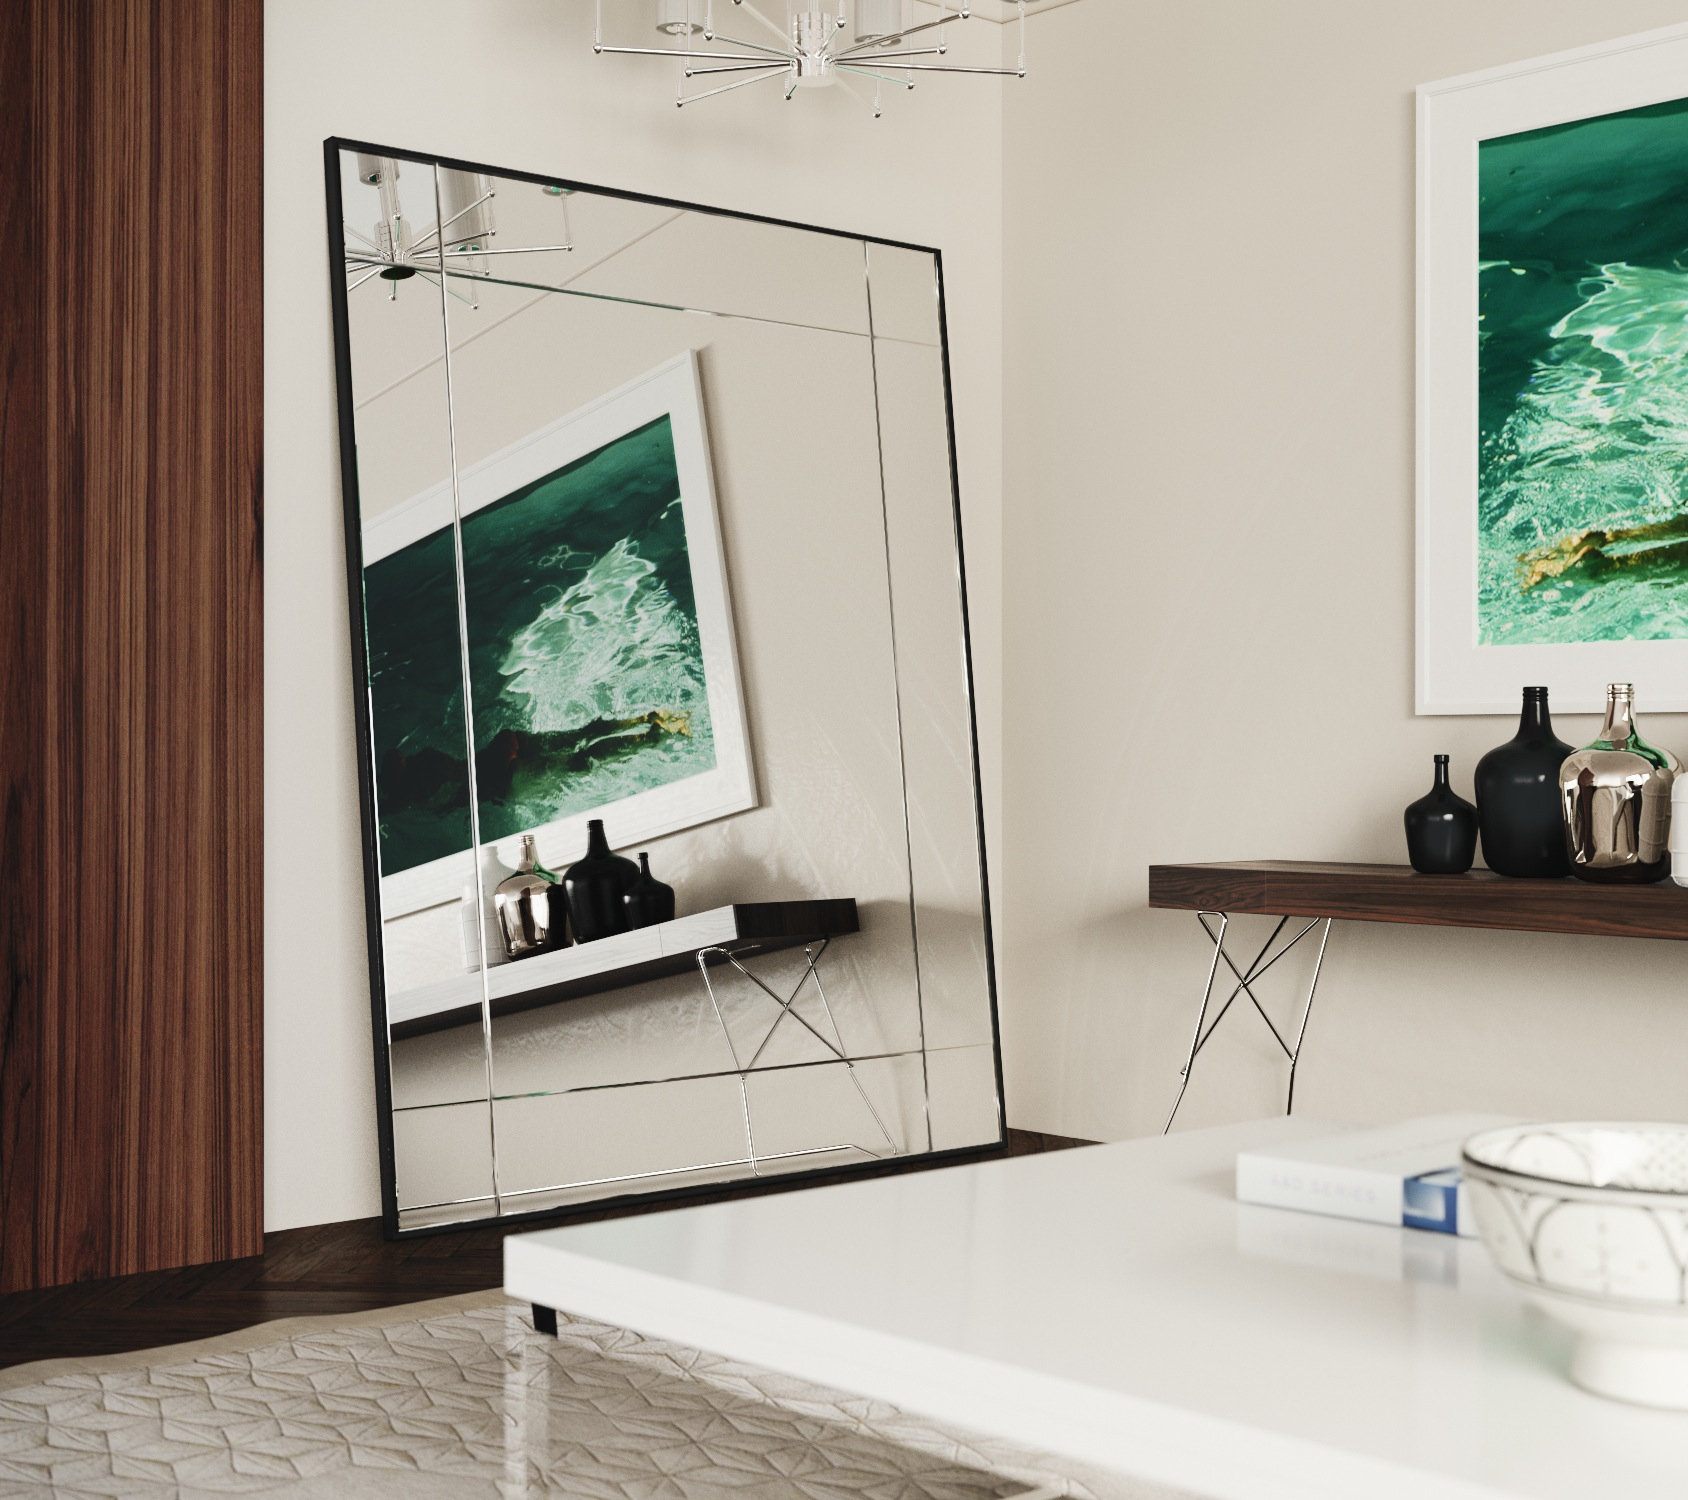 Leaning mosaic wall mirror by Mirror Coop